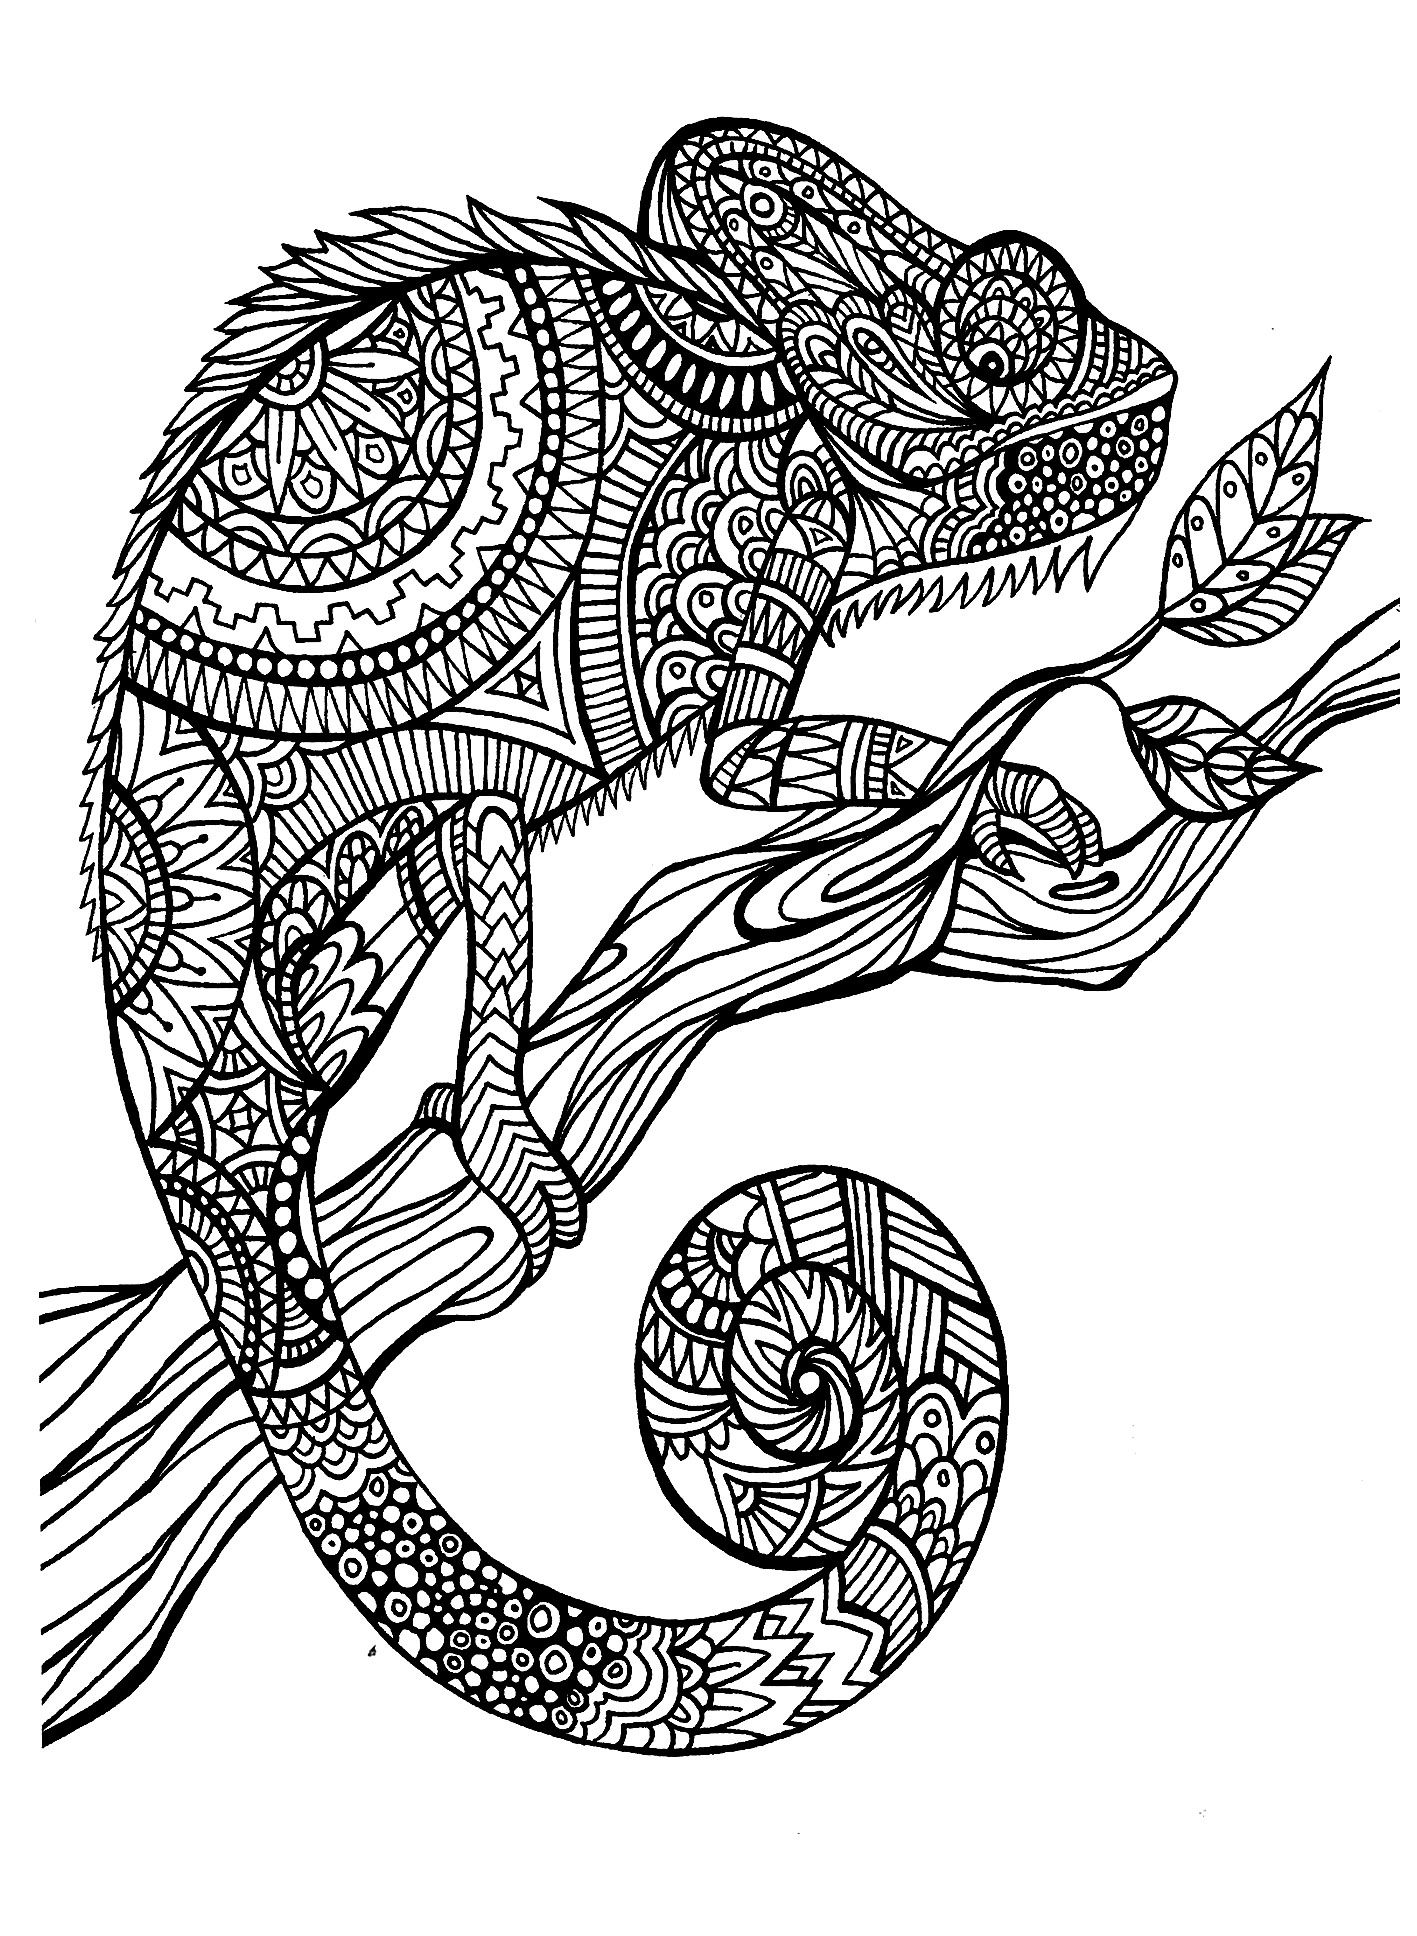 Lizards coloring pages to print - Free Coloring Page Coloring Adult Cameleon Patterns A Magnificien Cameleon To Color